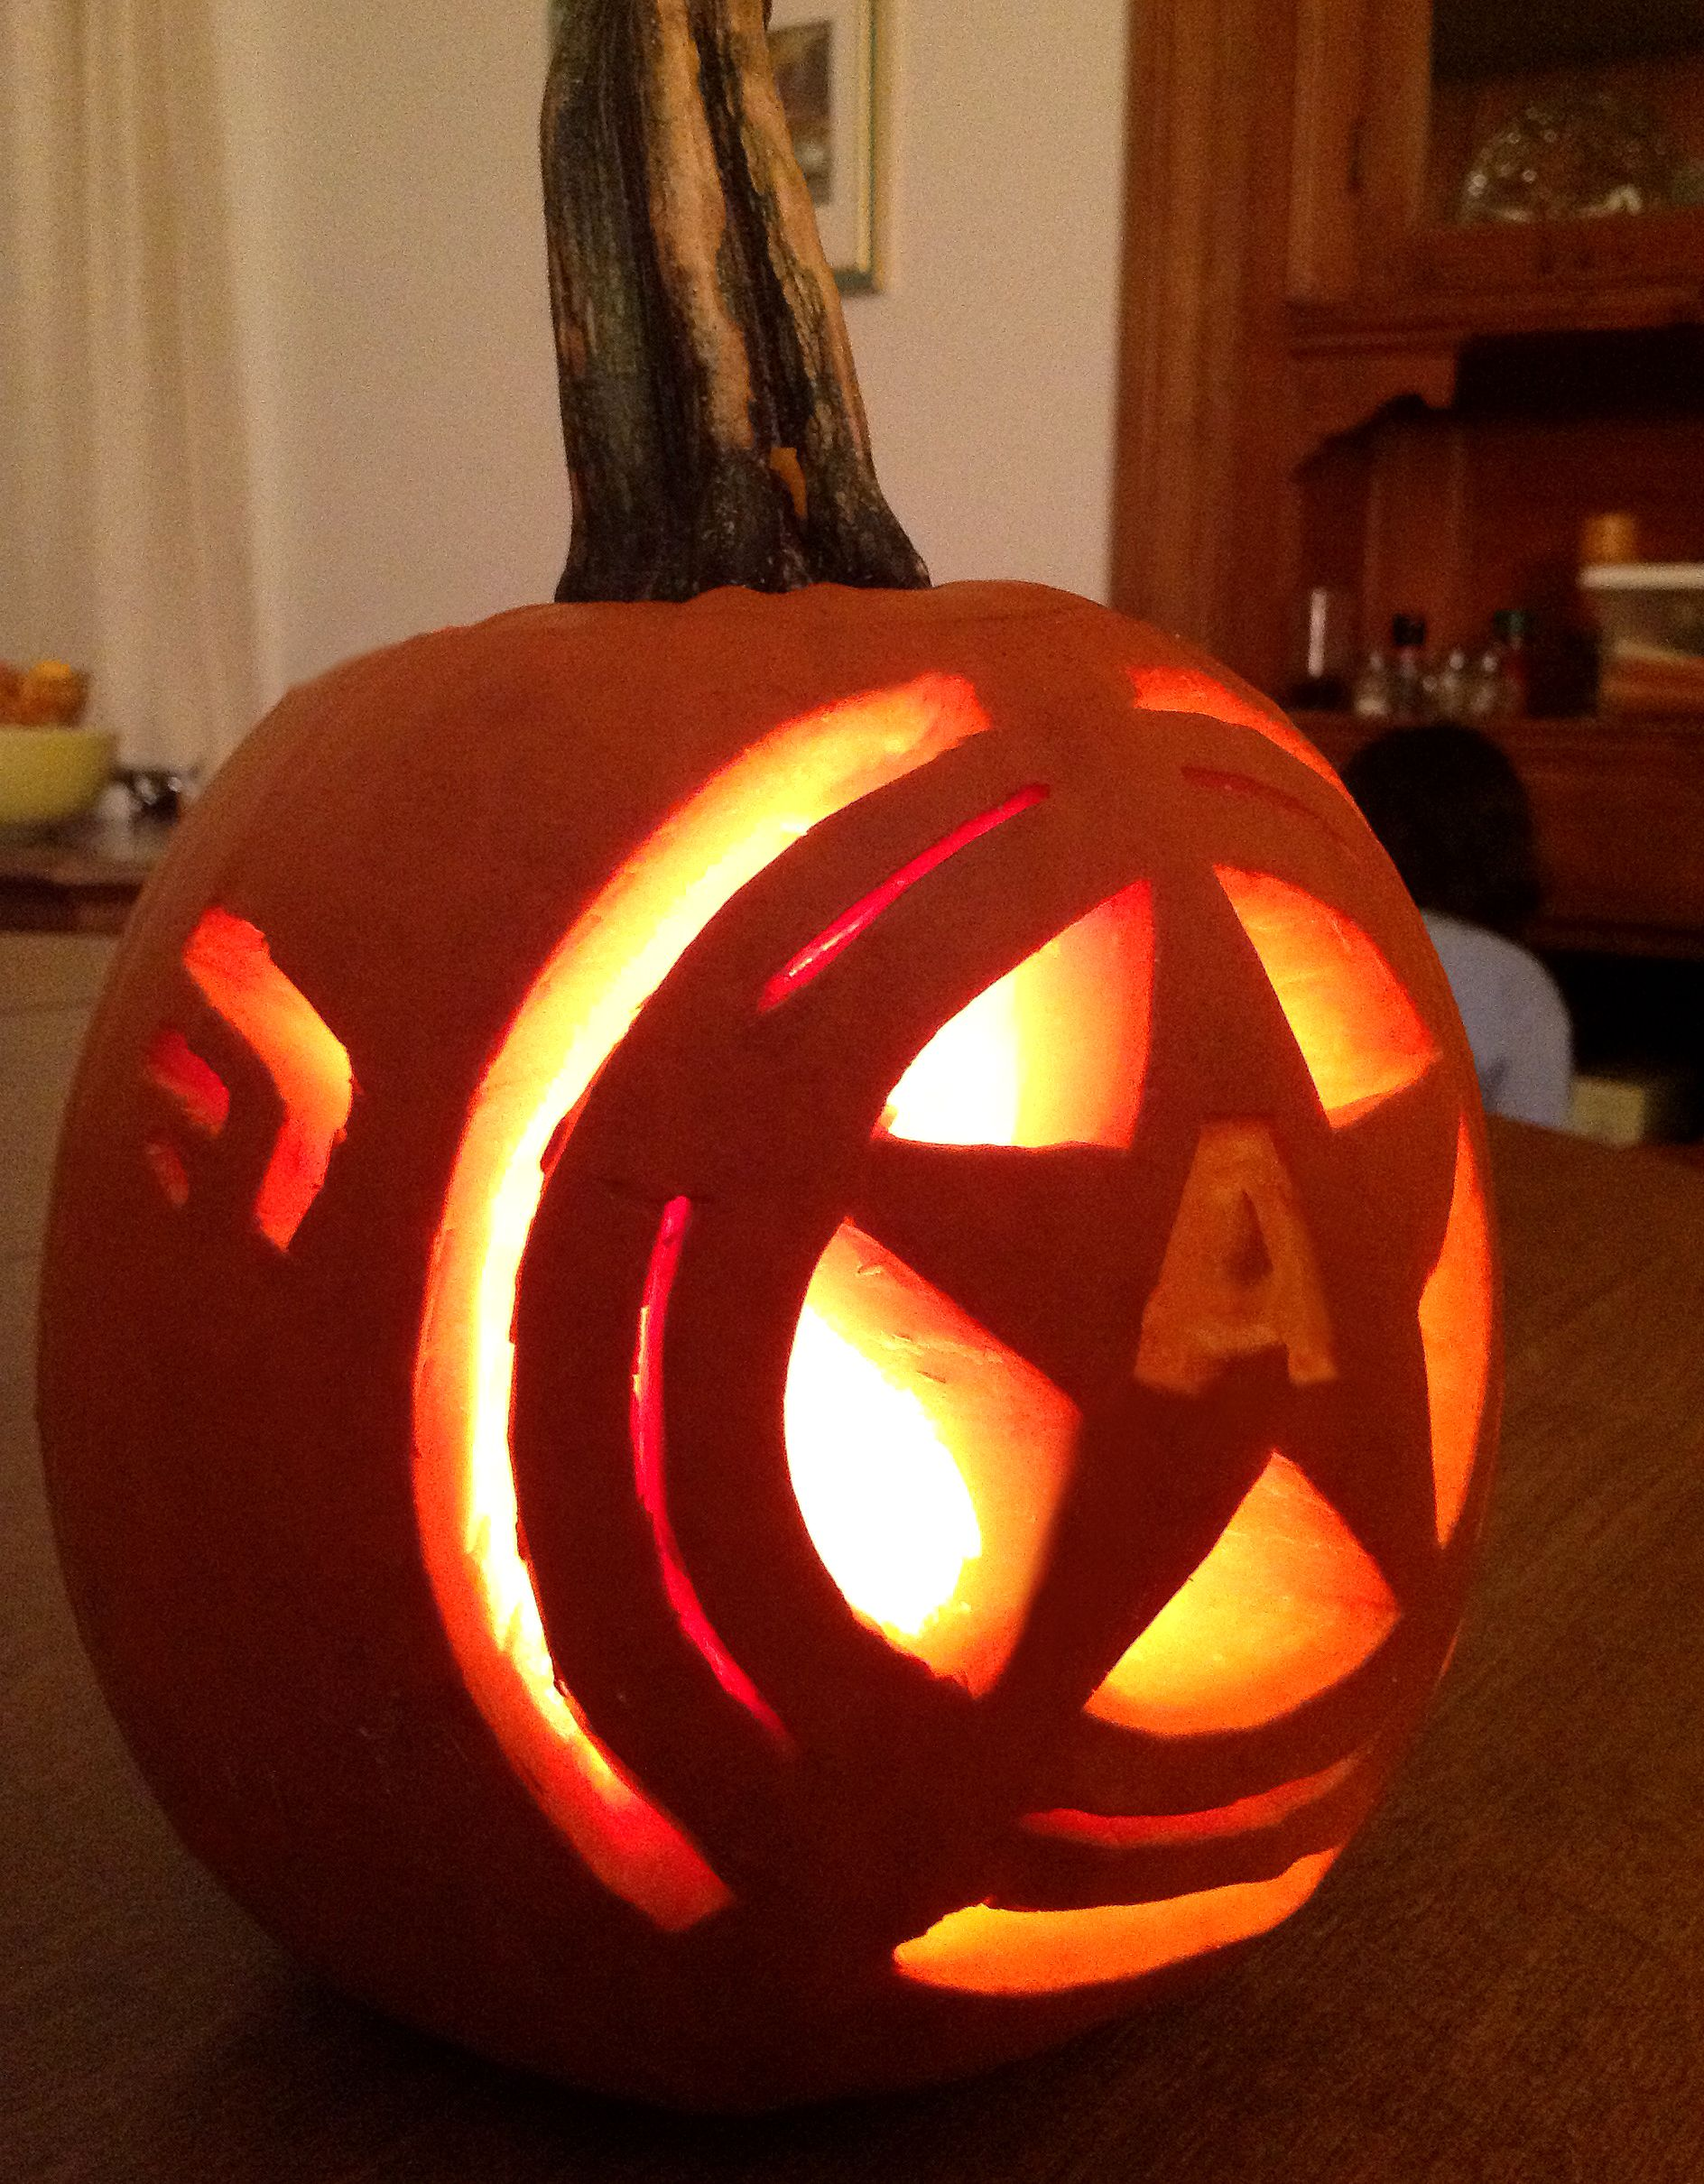 My Captain America pumpkin carving | Things for Emily | Pinterest ...